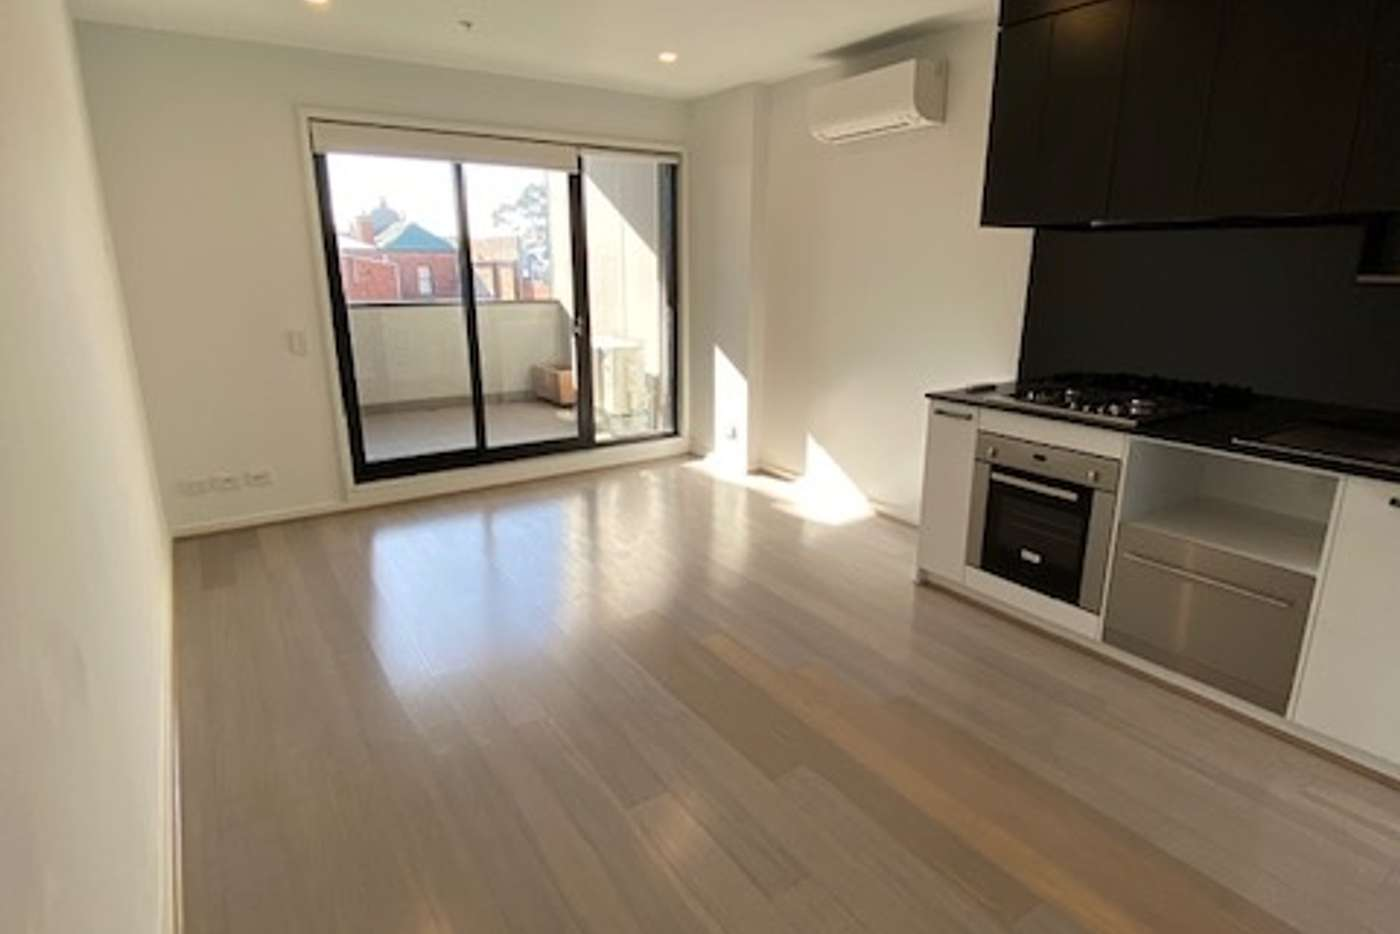 Sixth view of Homely apartment listing, 312/4-8 Breese Street, Brunswick VIC 3056